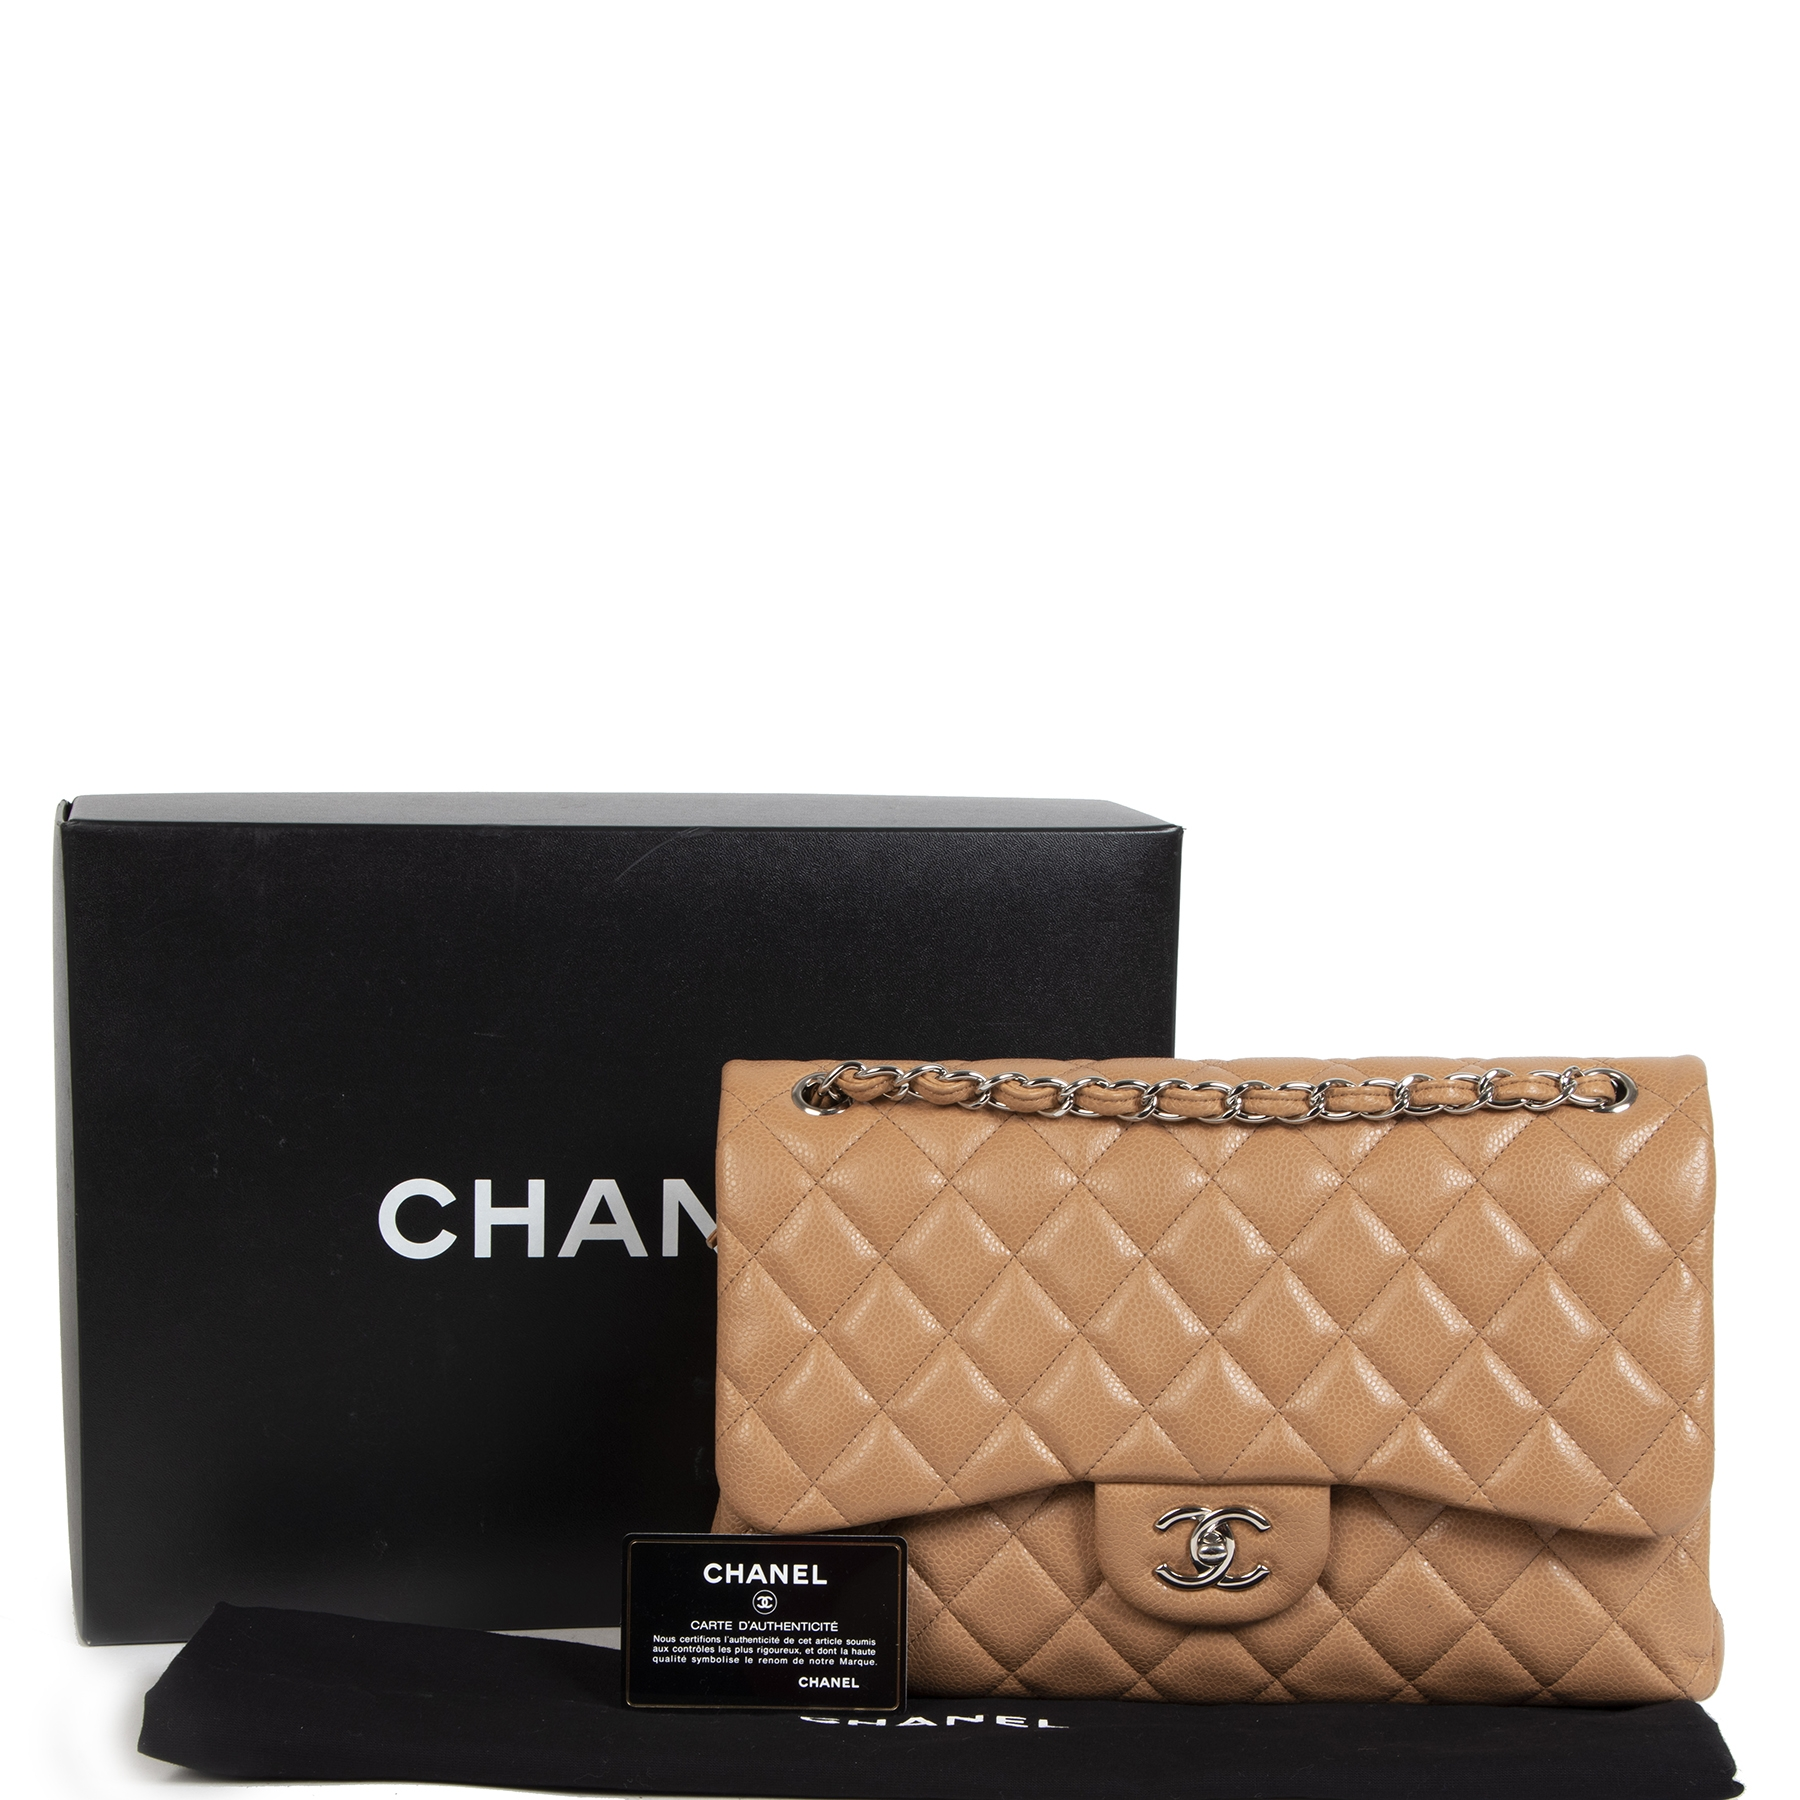 Buy and sell 100% authentic Chanel Caviar Classic Flap Bag Jumbo for the best price